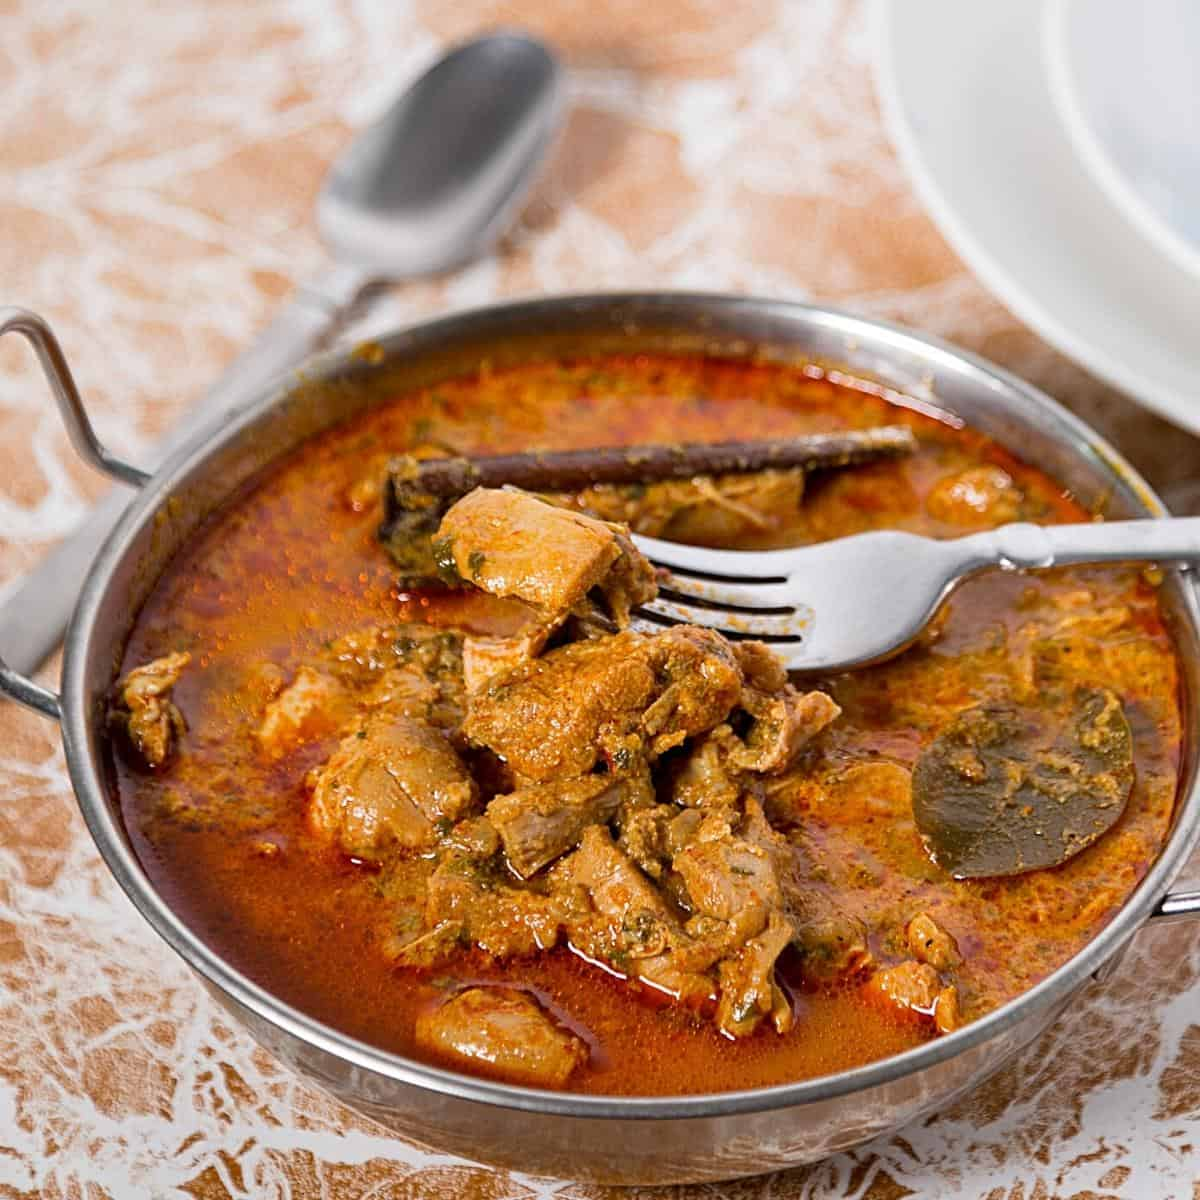 An Indian dish with chicken curry and fork.